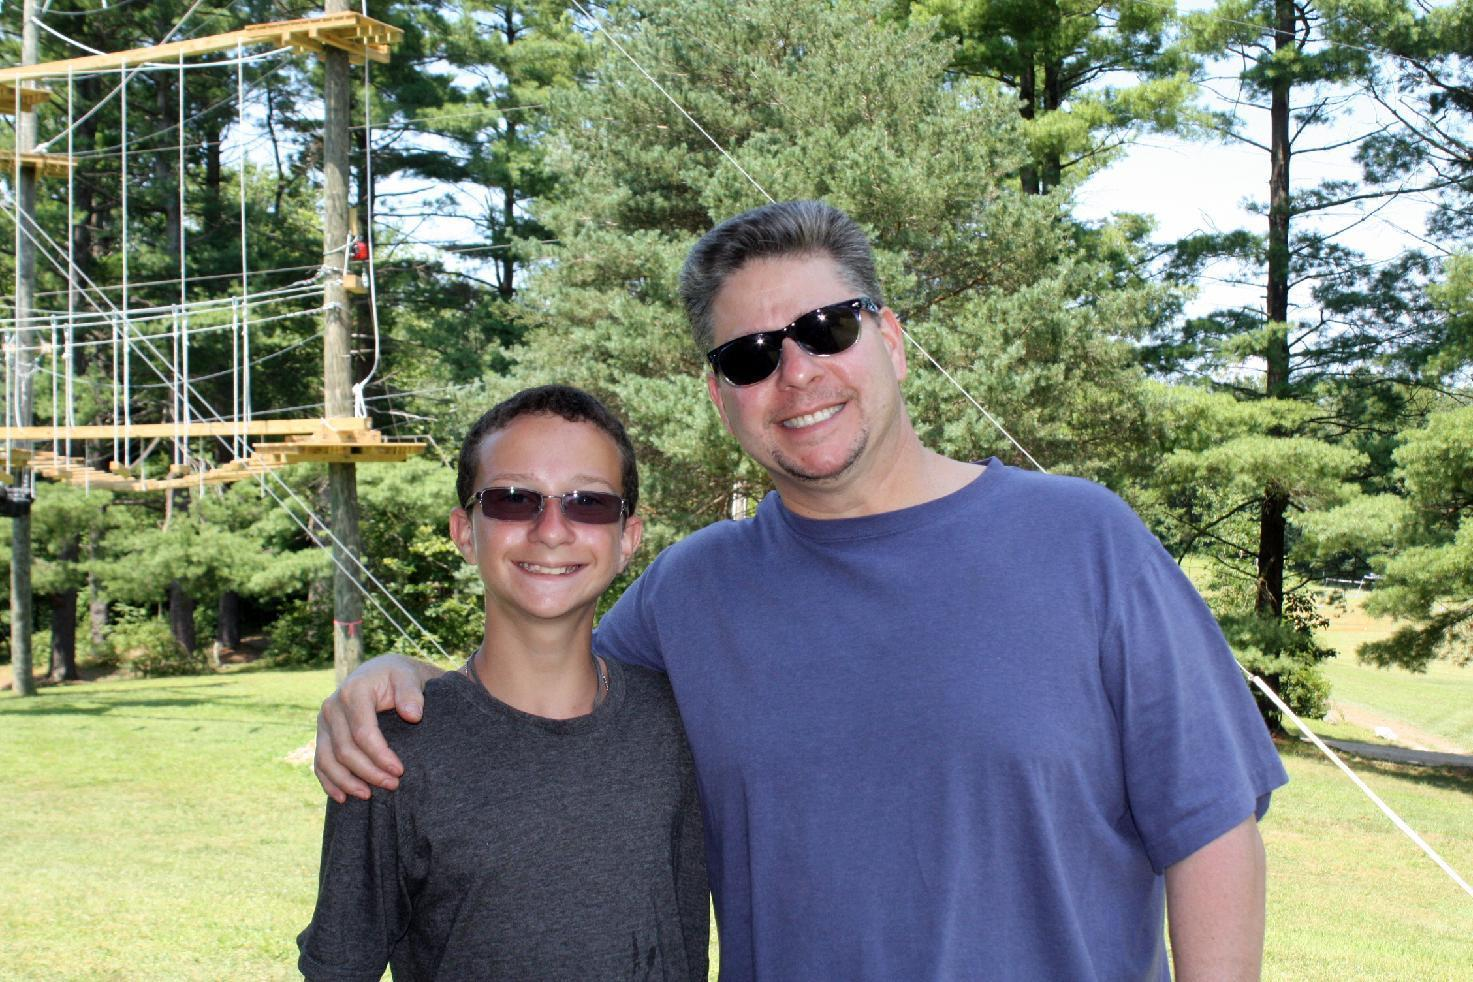 Visiting day at summer camp can be hard on parents and kids